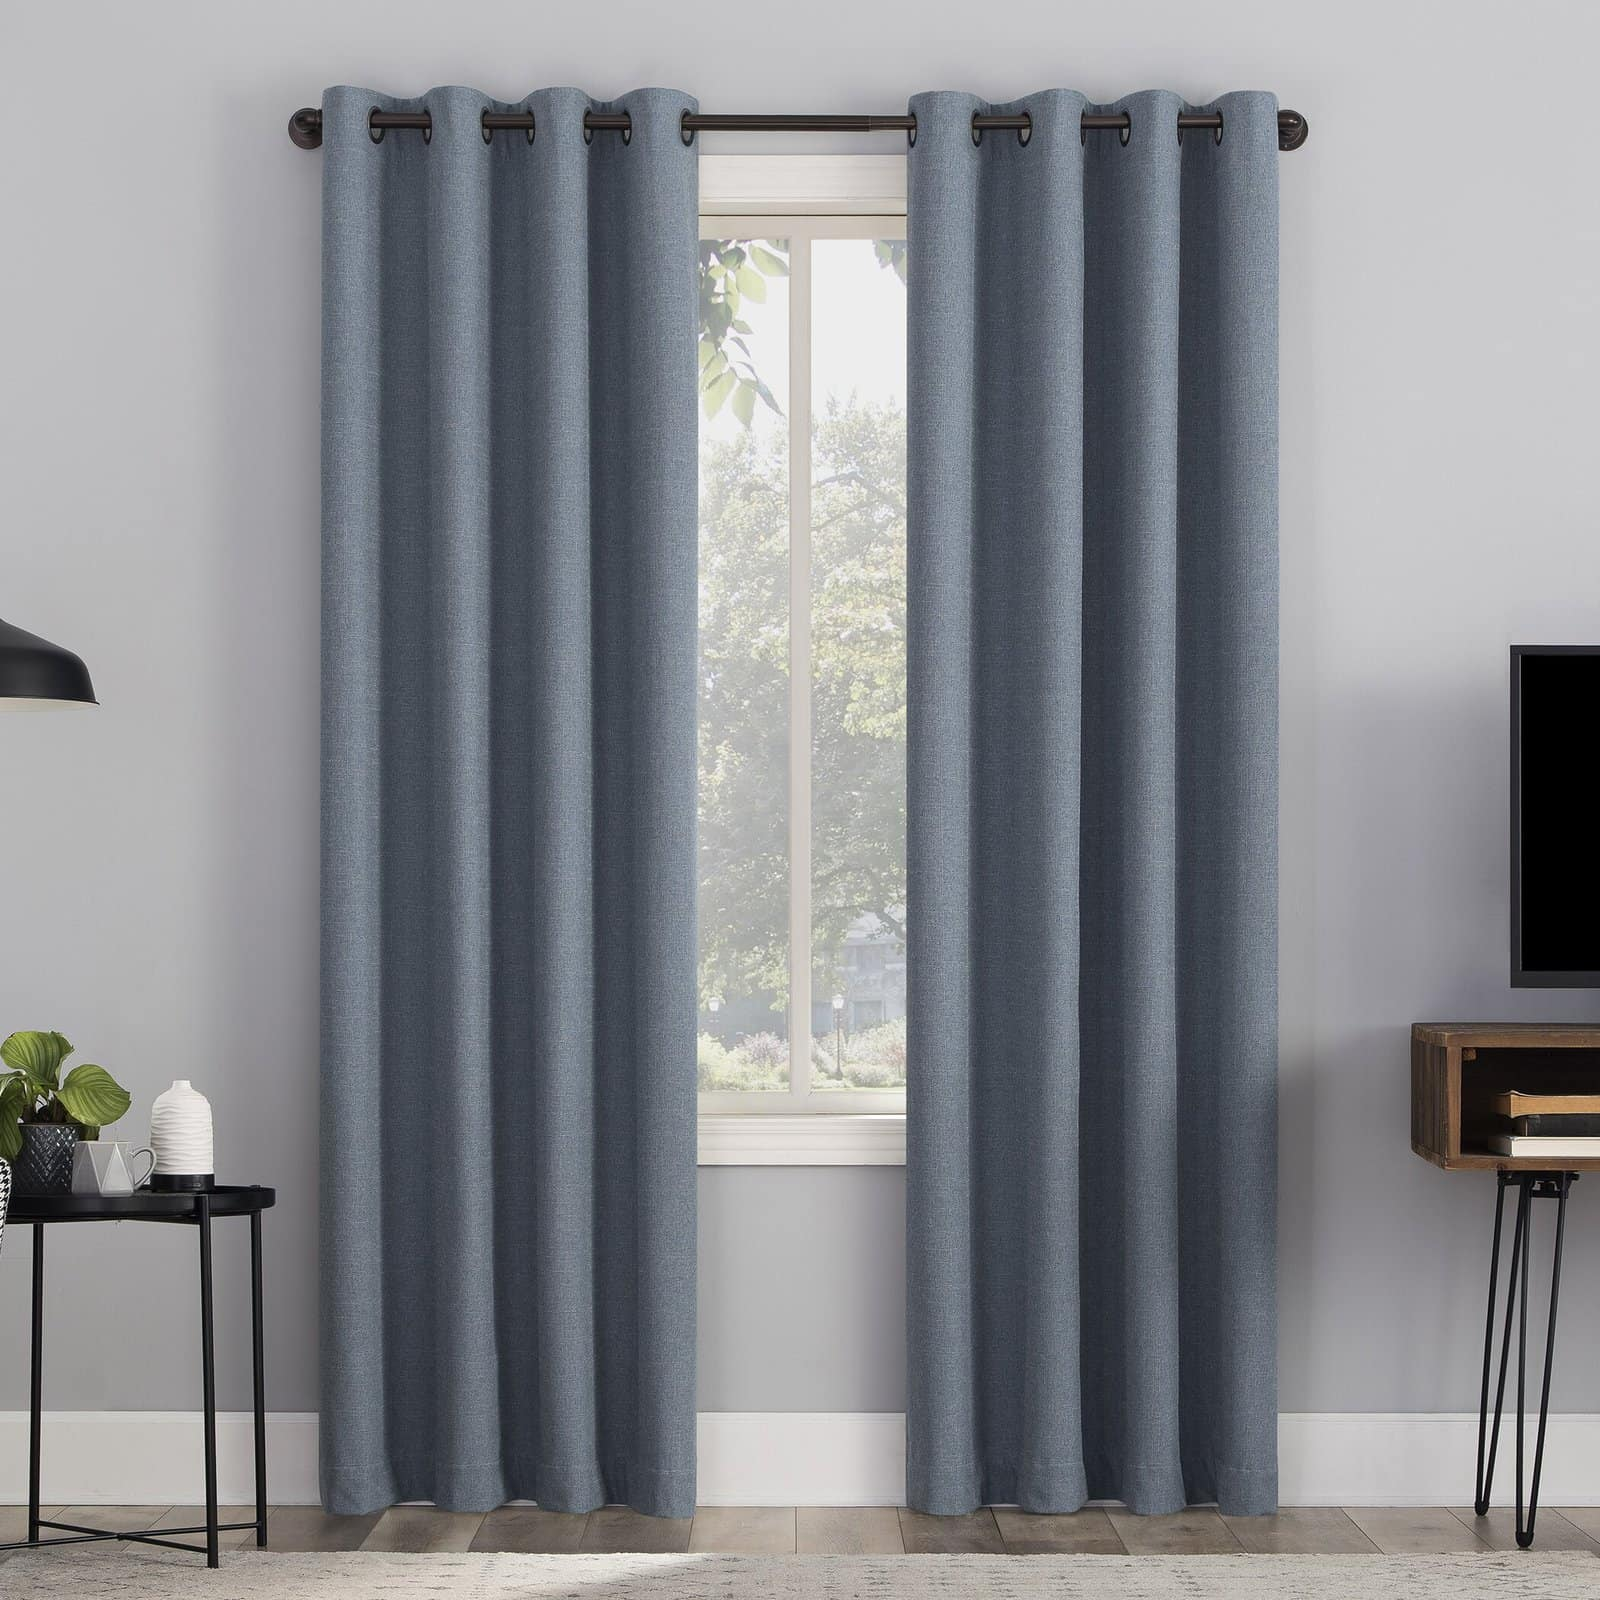 Deep Blue Thermal Curtains